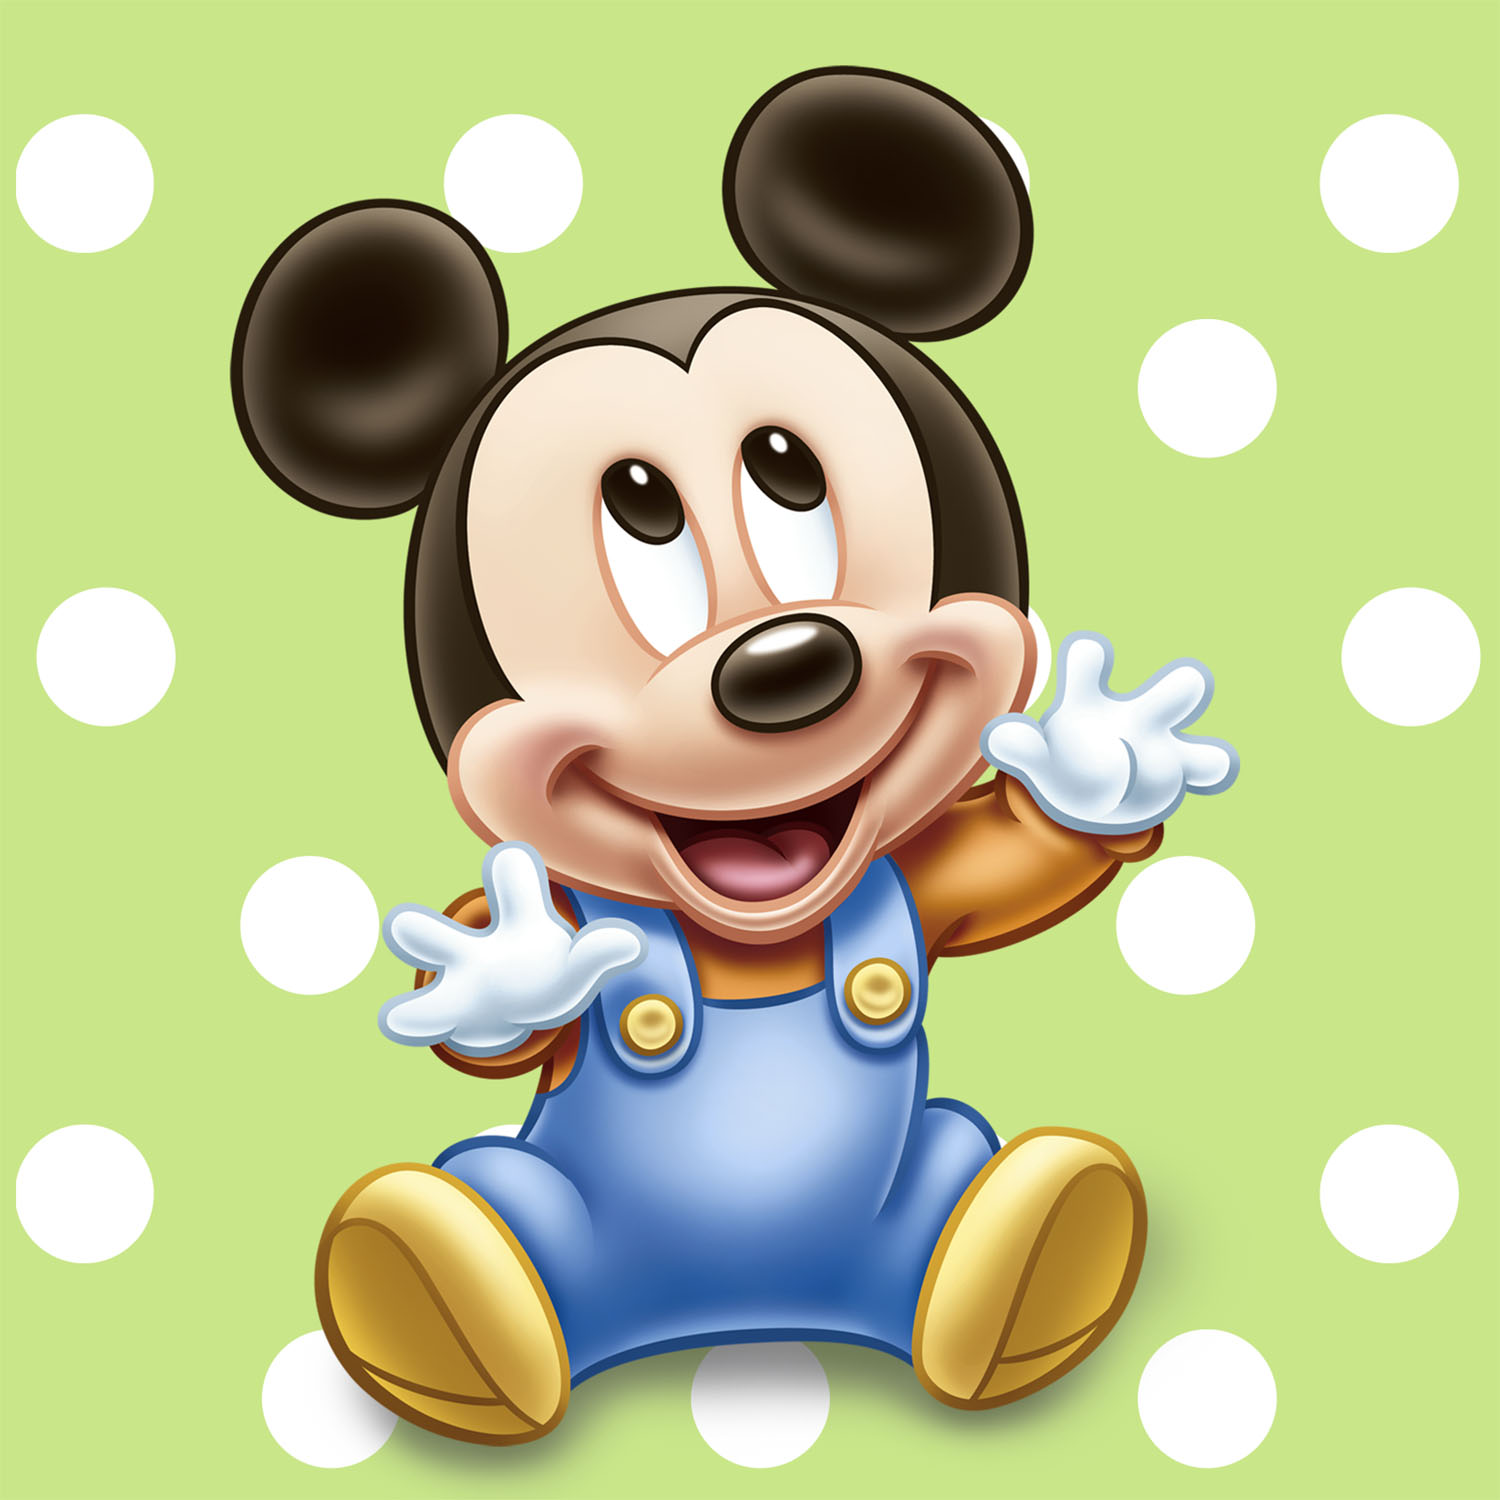 Collection of Baby Mickey Mouse Backgrounds on HDWallpapers